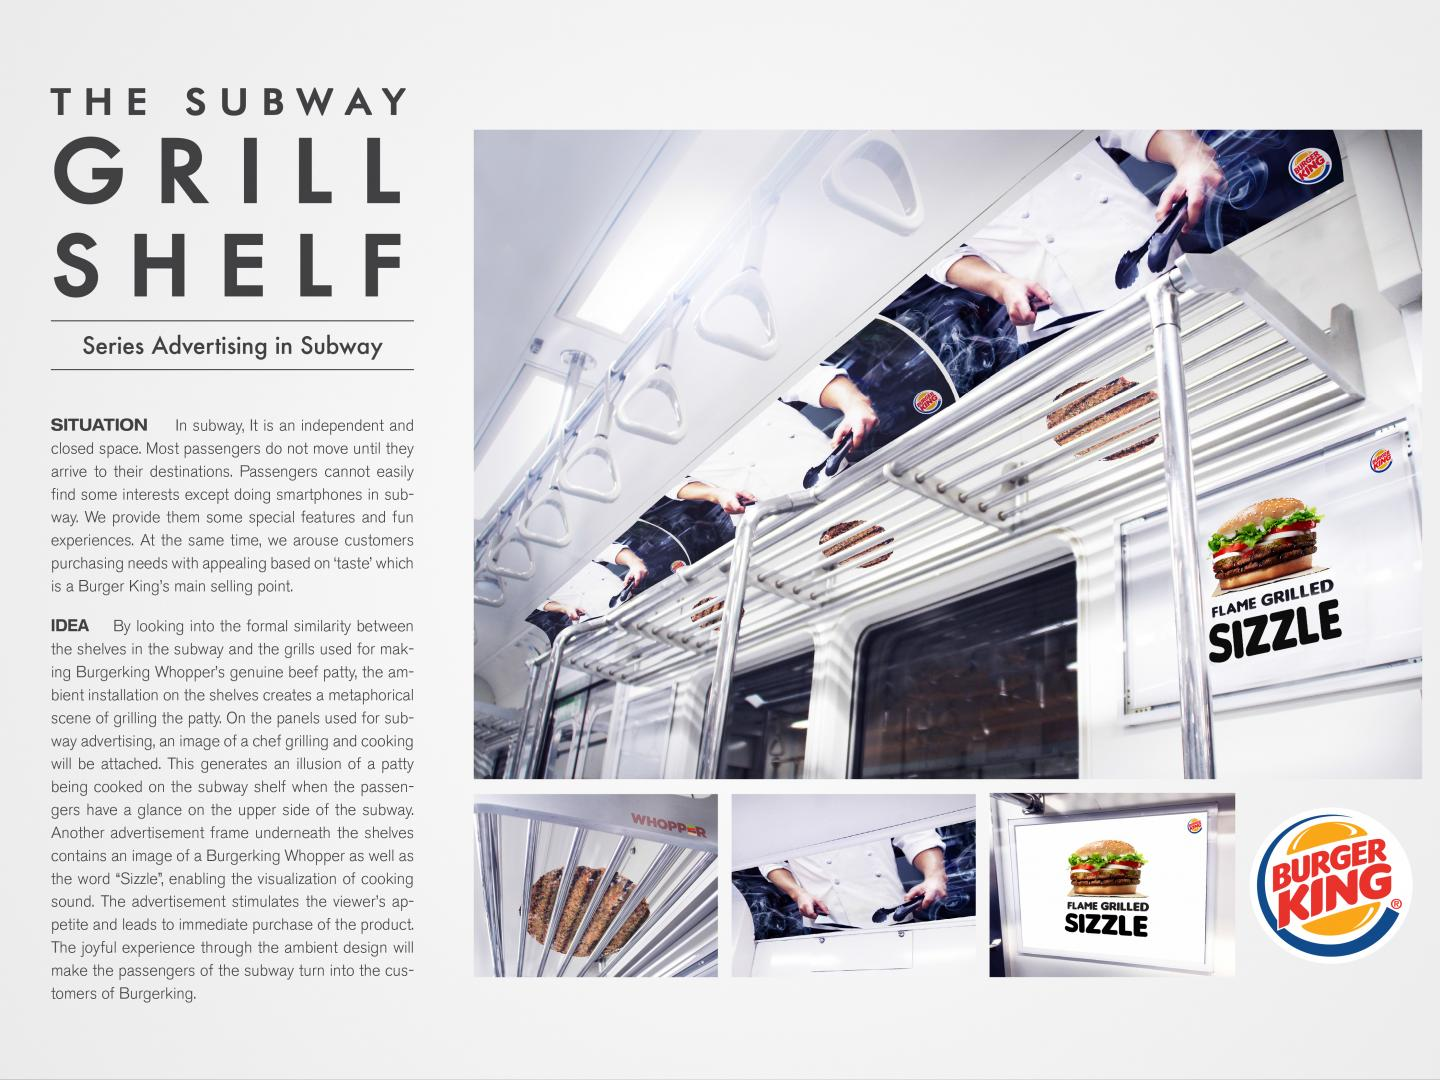 THE SUBWAY GRILL SHELF Thumbnail